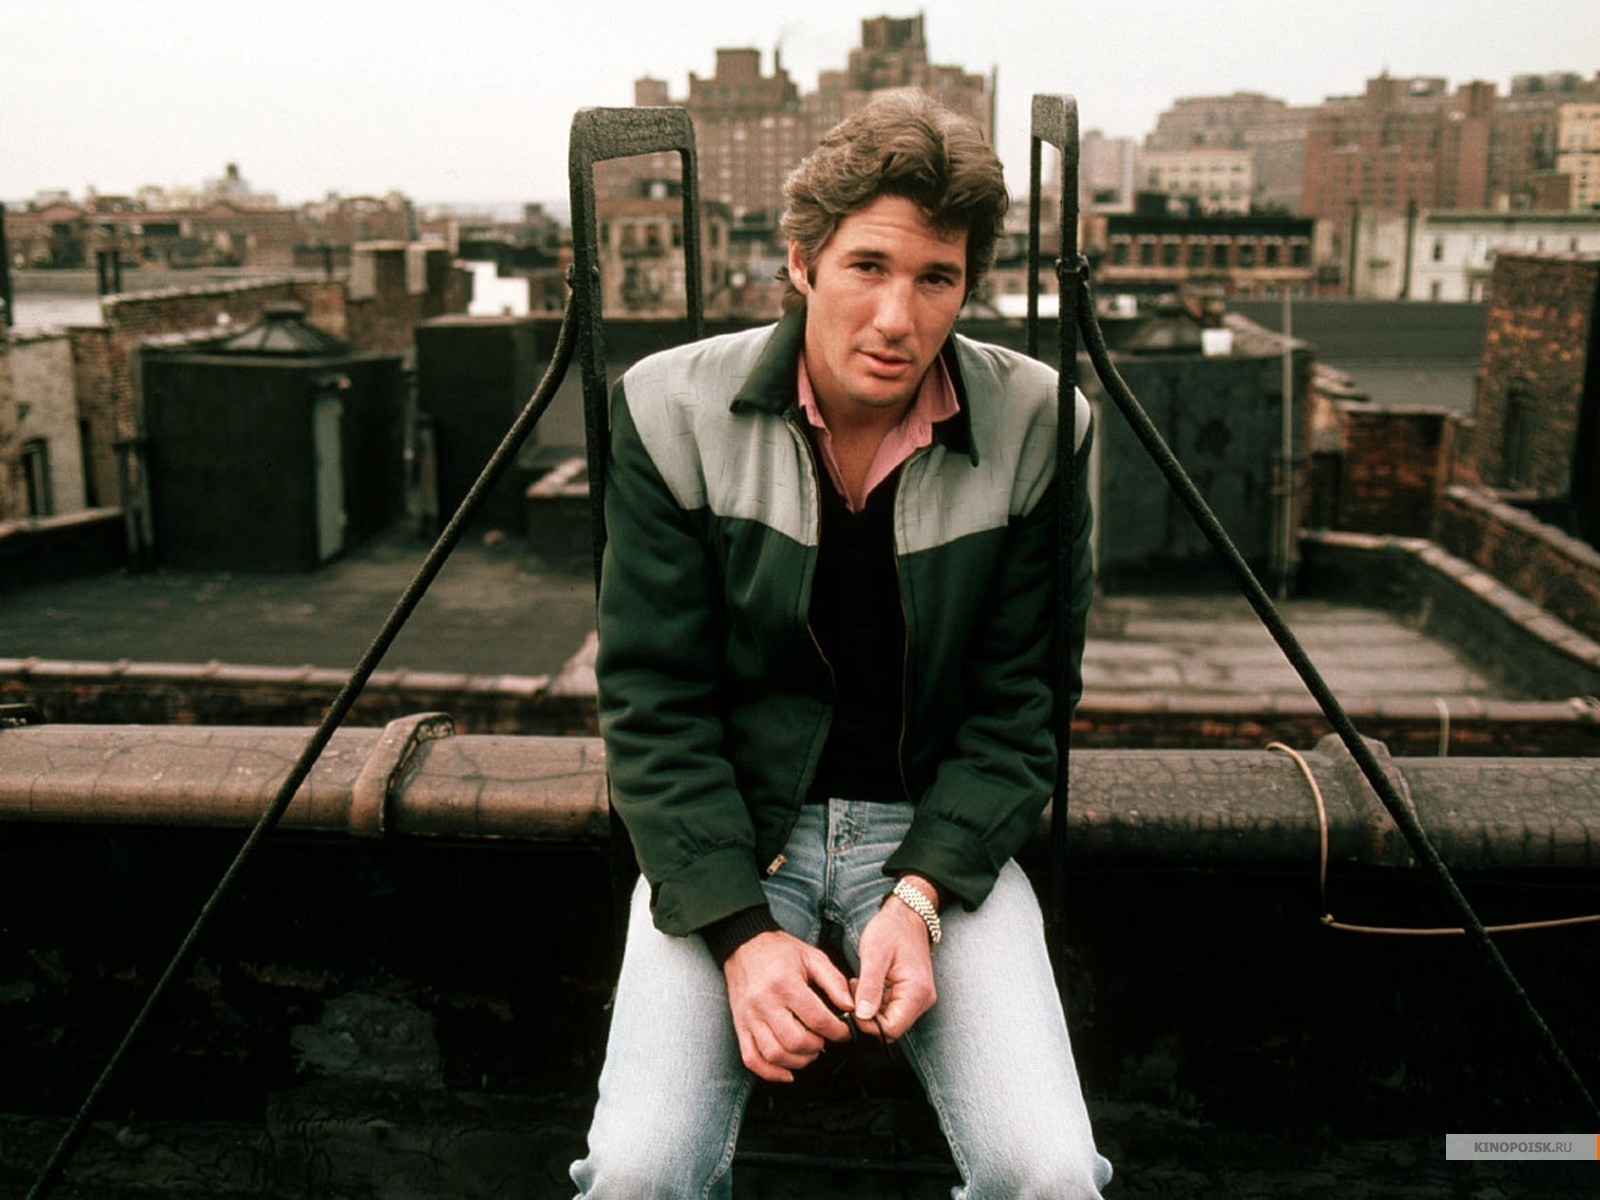 Richard Gere images Richard Gere HD wallpaper and background 1600x1200